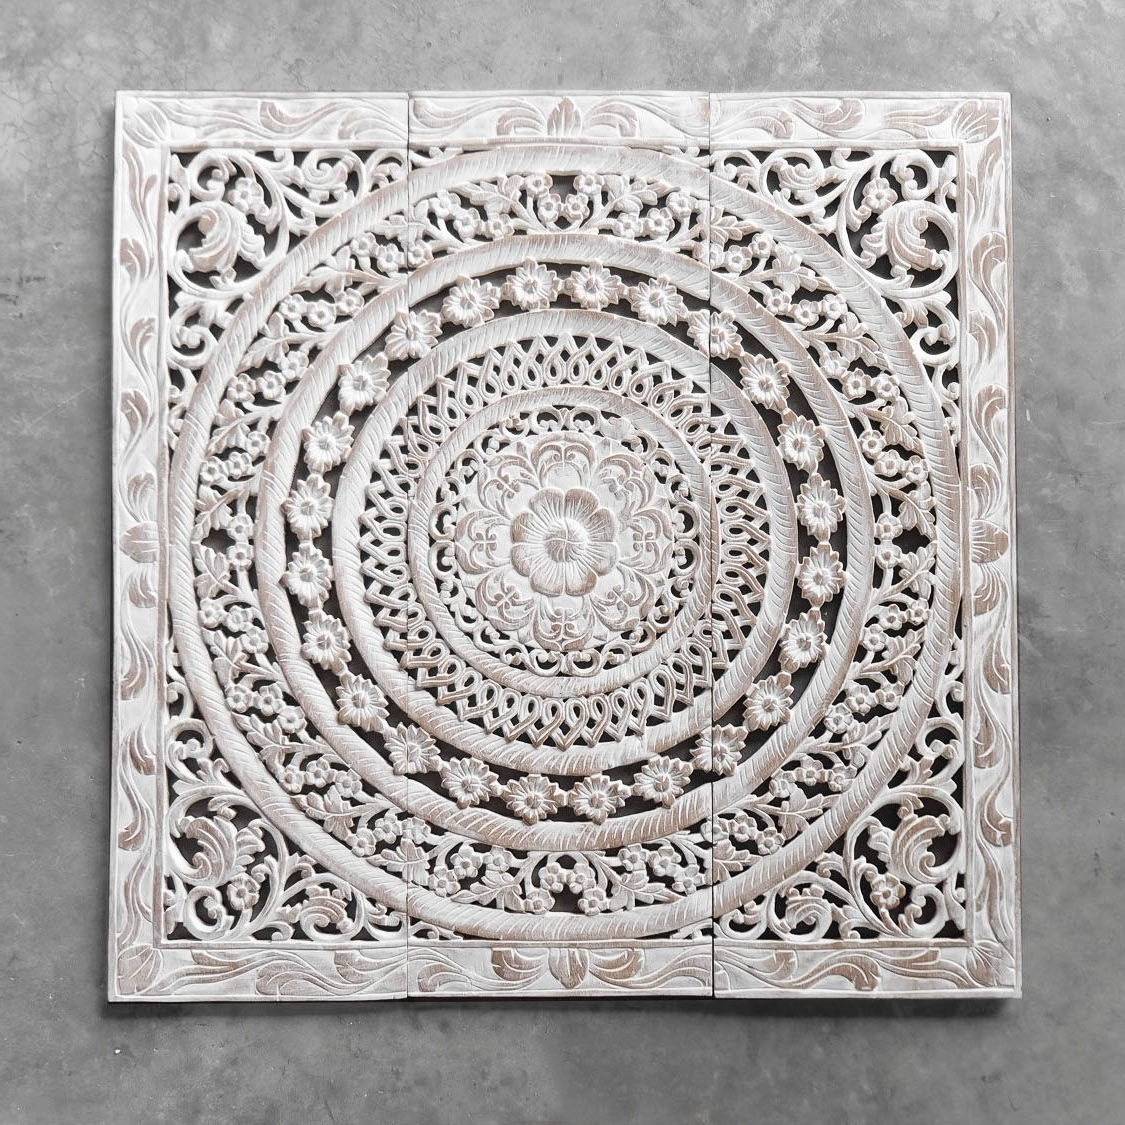 Hand Carved Wood Wall Decor Moroccan Decent Wood Carving Wall Art In Most Current Carved Wood Wall Art (View 10 of 15)